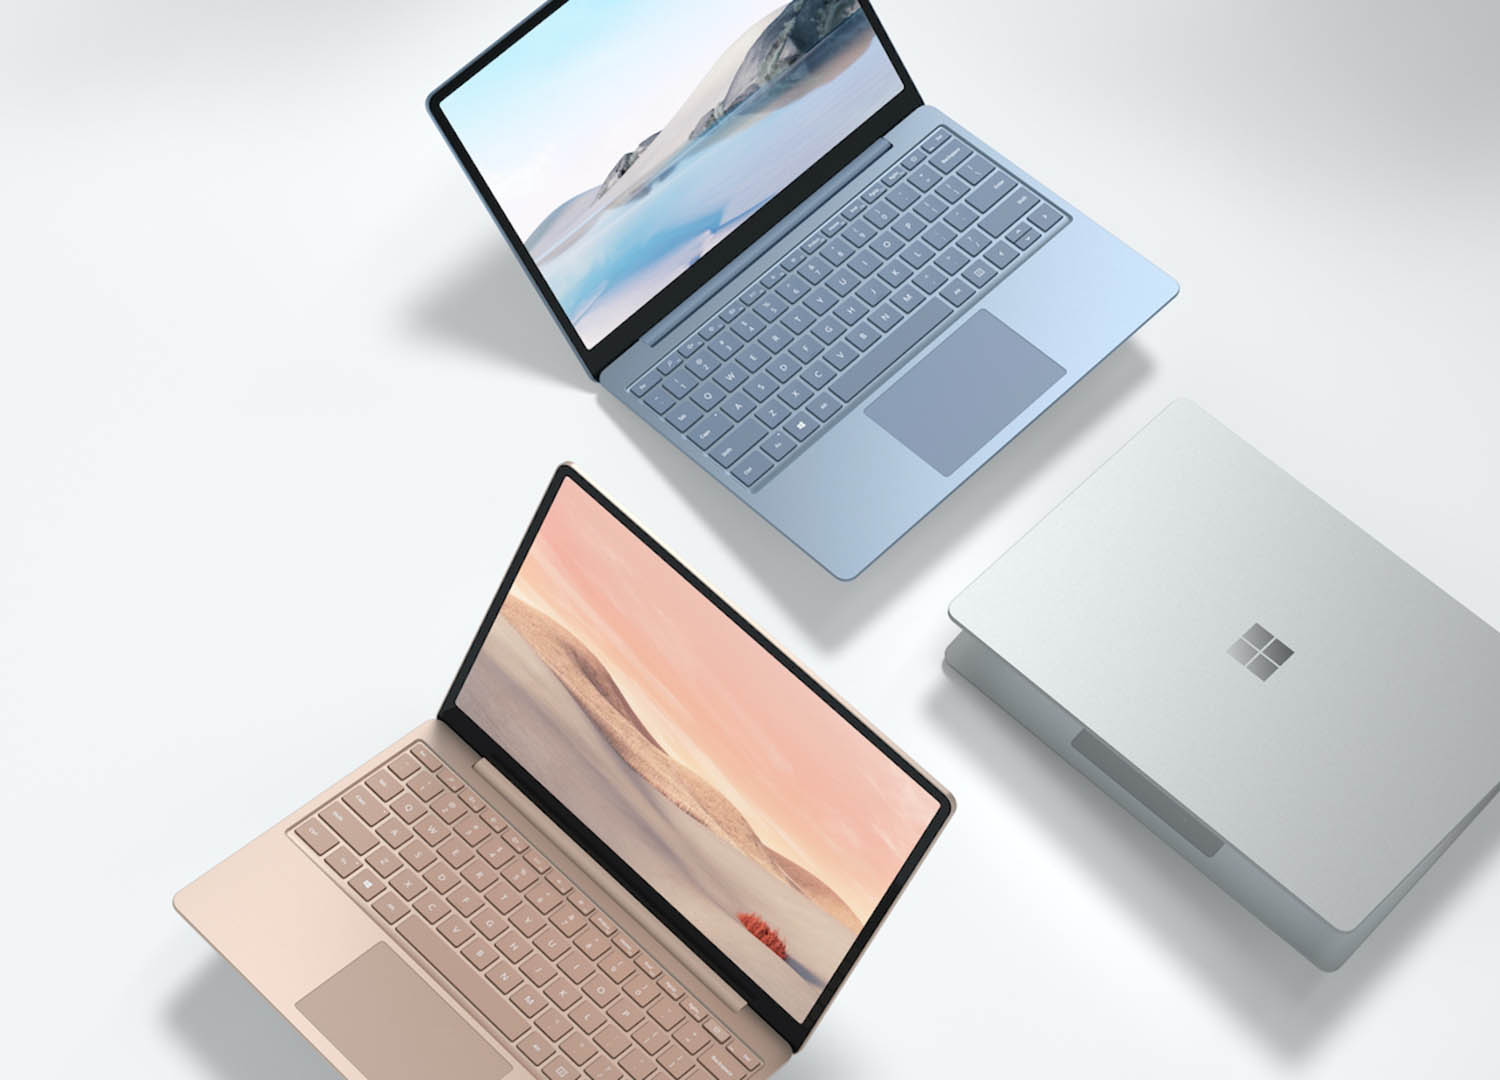 Microsoft's Surface Laptop 4 Gets FCC Approval for Four New Variants to Be  Sold in the U.S. | LaptrinhX